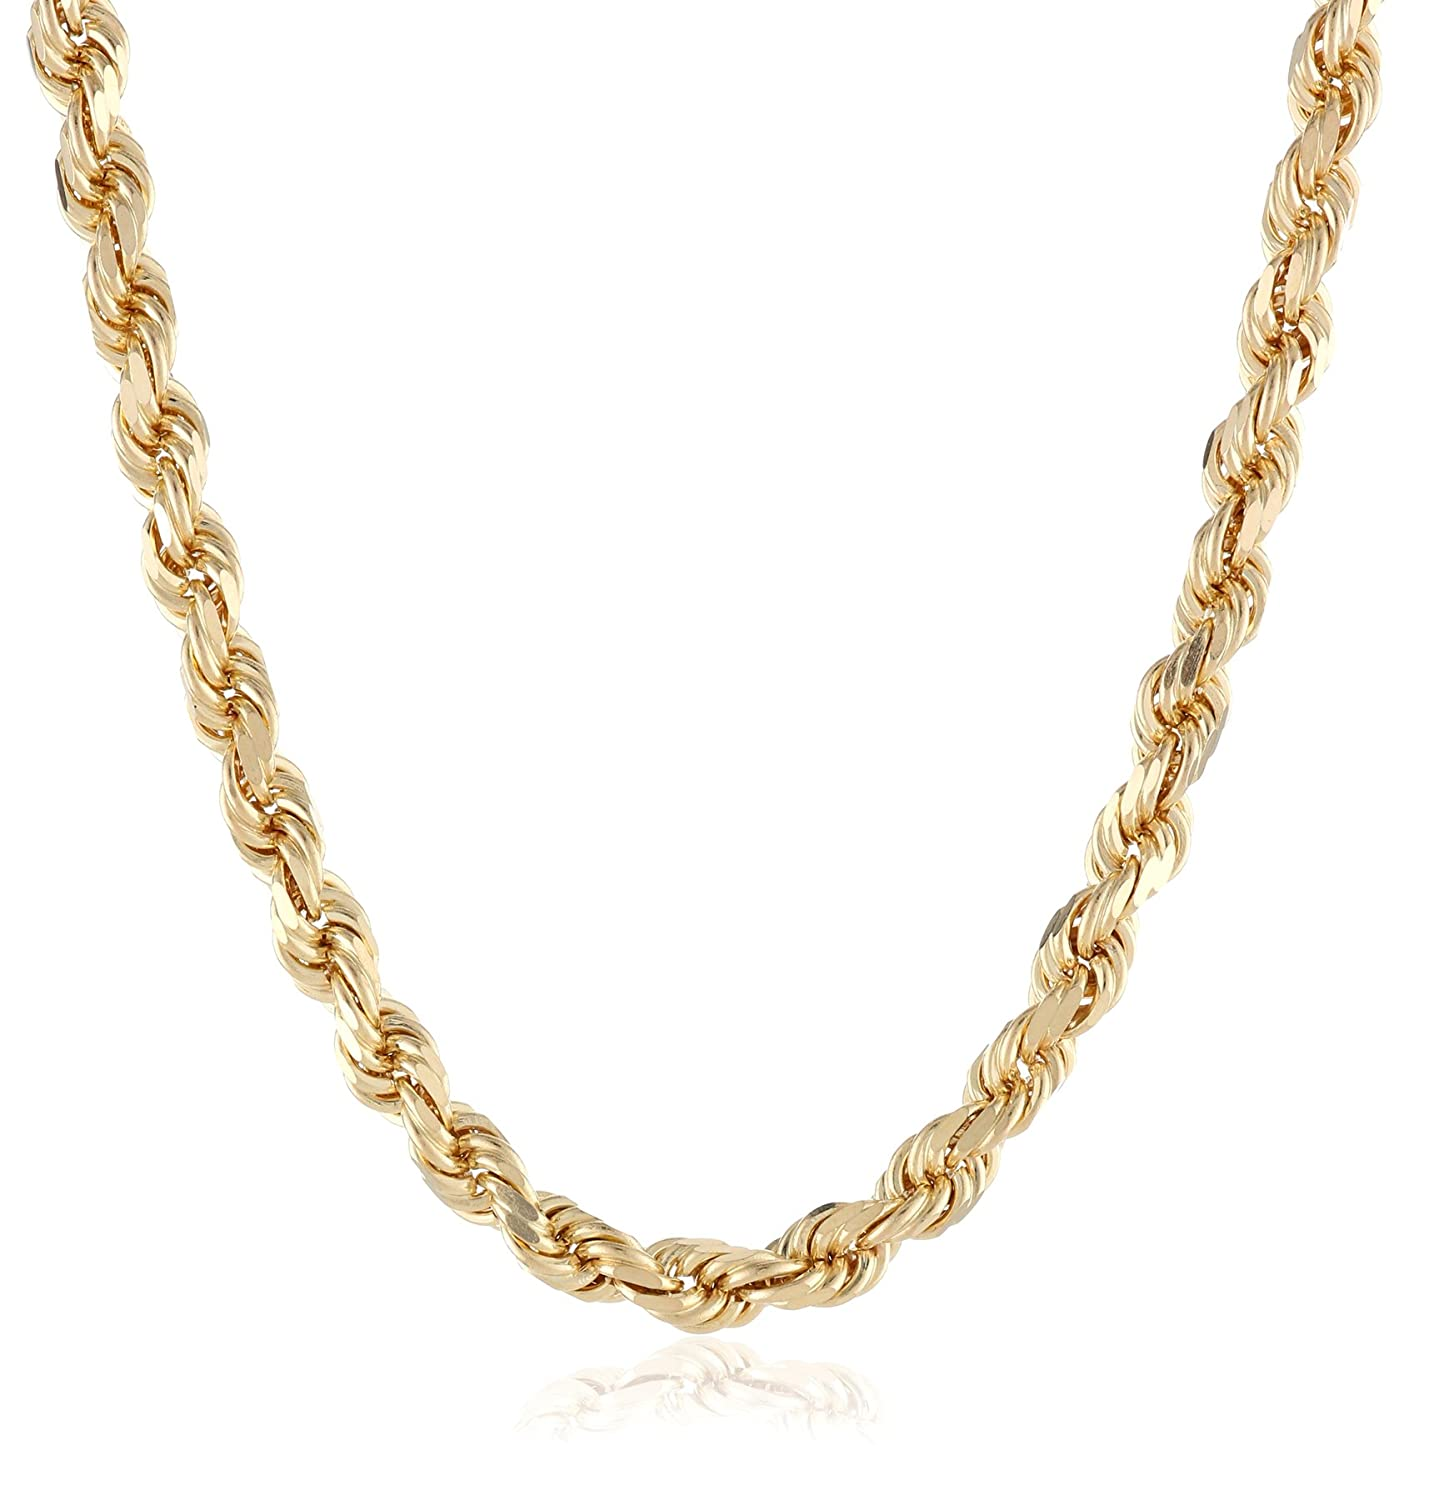 lyst pave diamond jewelry designer skull pav necklace chains tw pendant bloomingdales gold women in bloomingdale ct micro white s